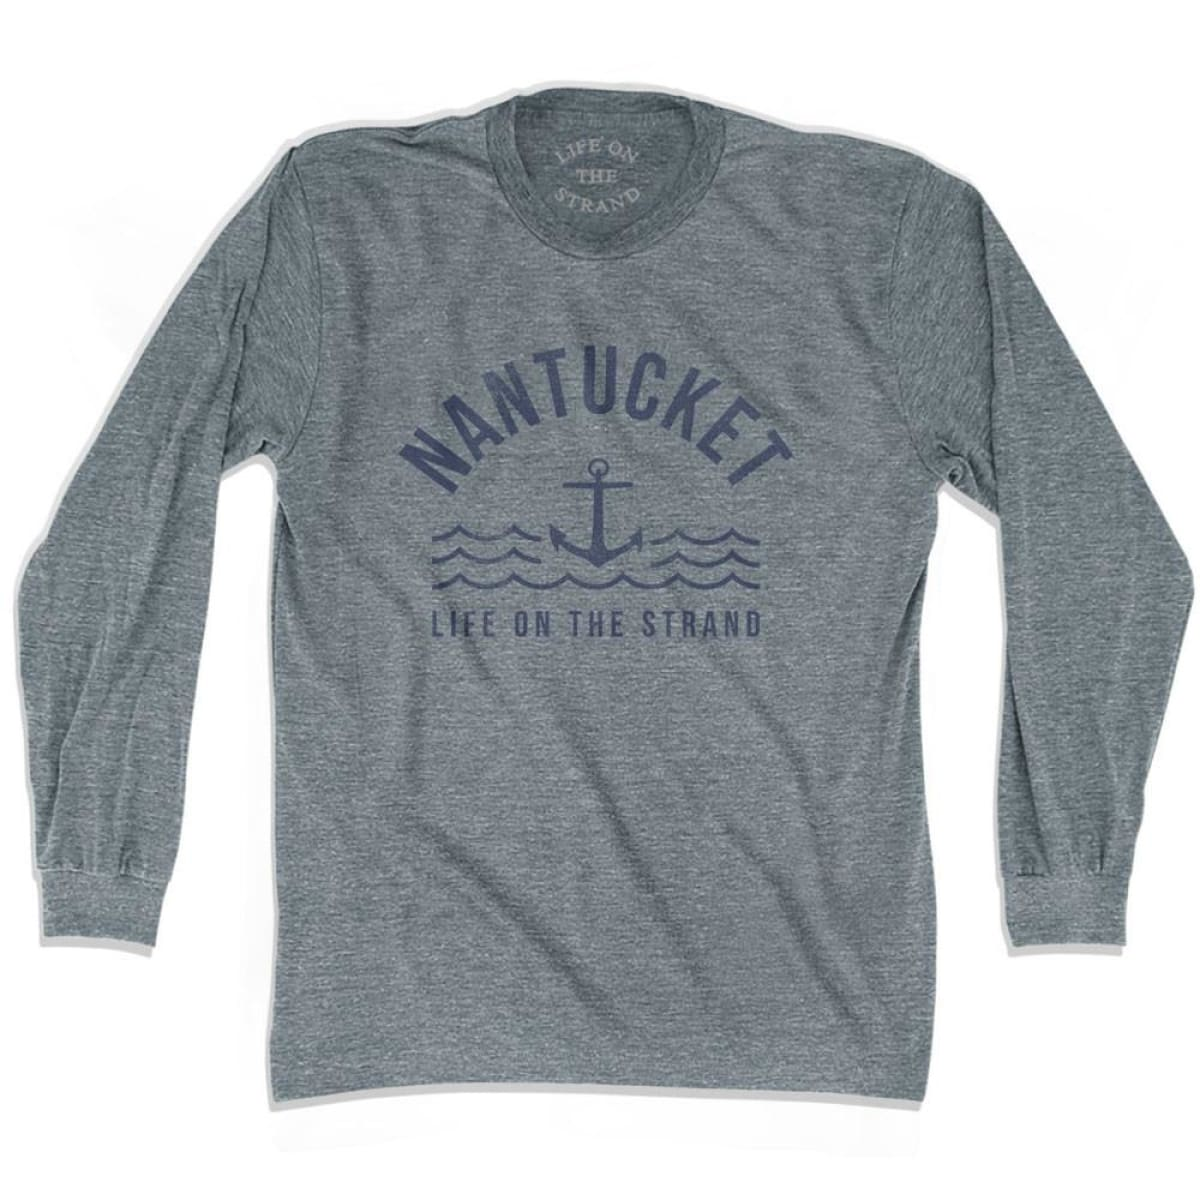 Nantucket Anchor Life on the Strand Long Sleeve T-shirt - Athletic Grey / Adult X-Small - Life on the Strand Anchor